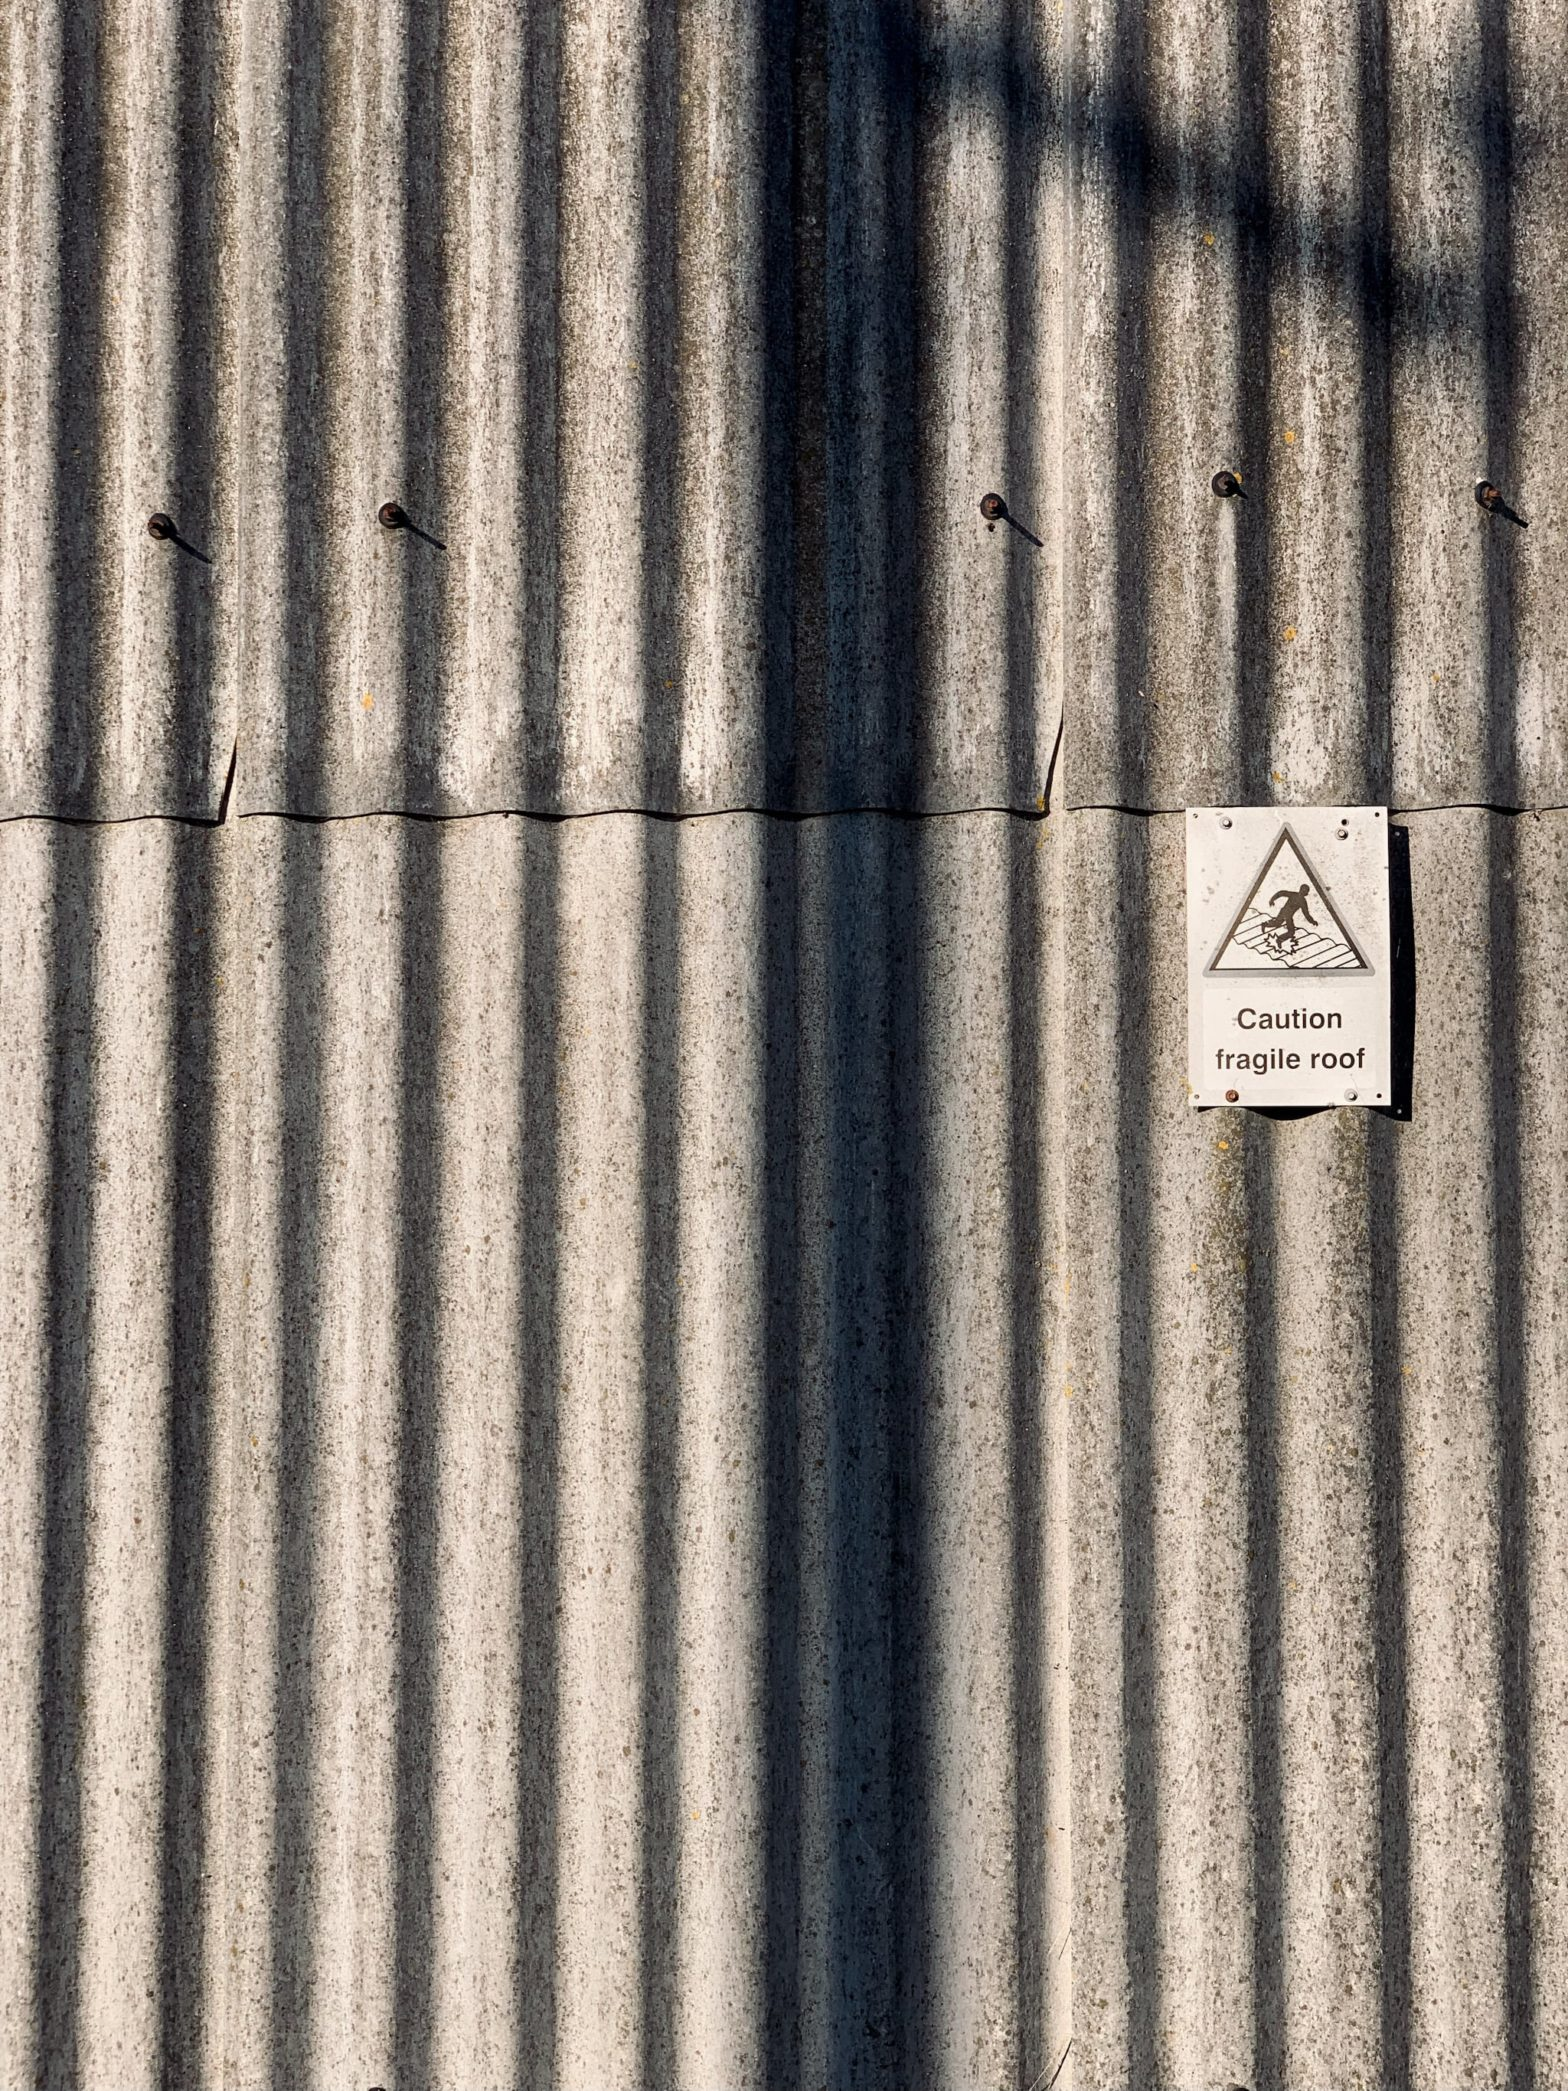 """Barn wall lined with corrugated sheets most likely made from cement with a sign that reads: """"Caution fragile roof"""". Vertical shadow is cast over the photo by a lamp post outside the frame."""